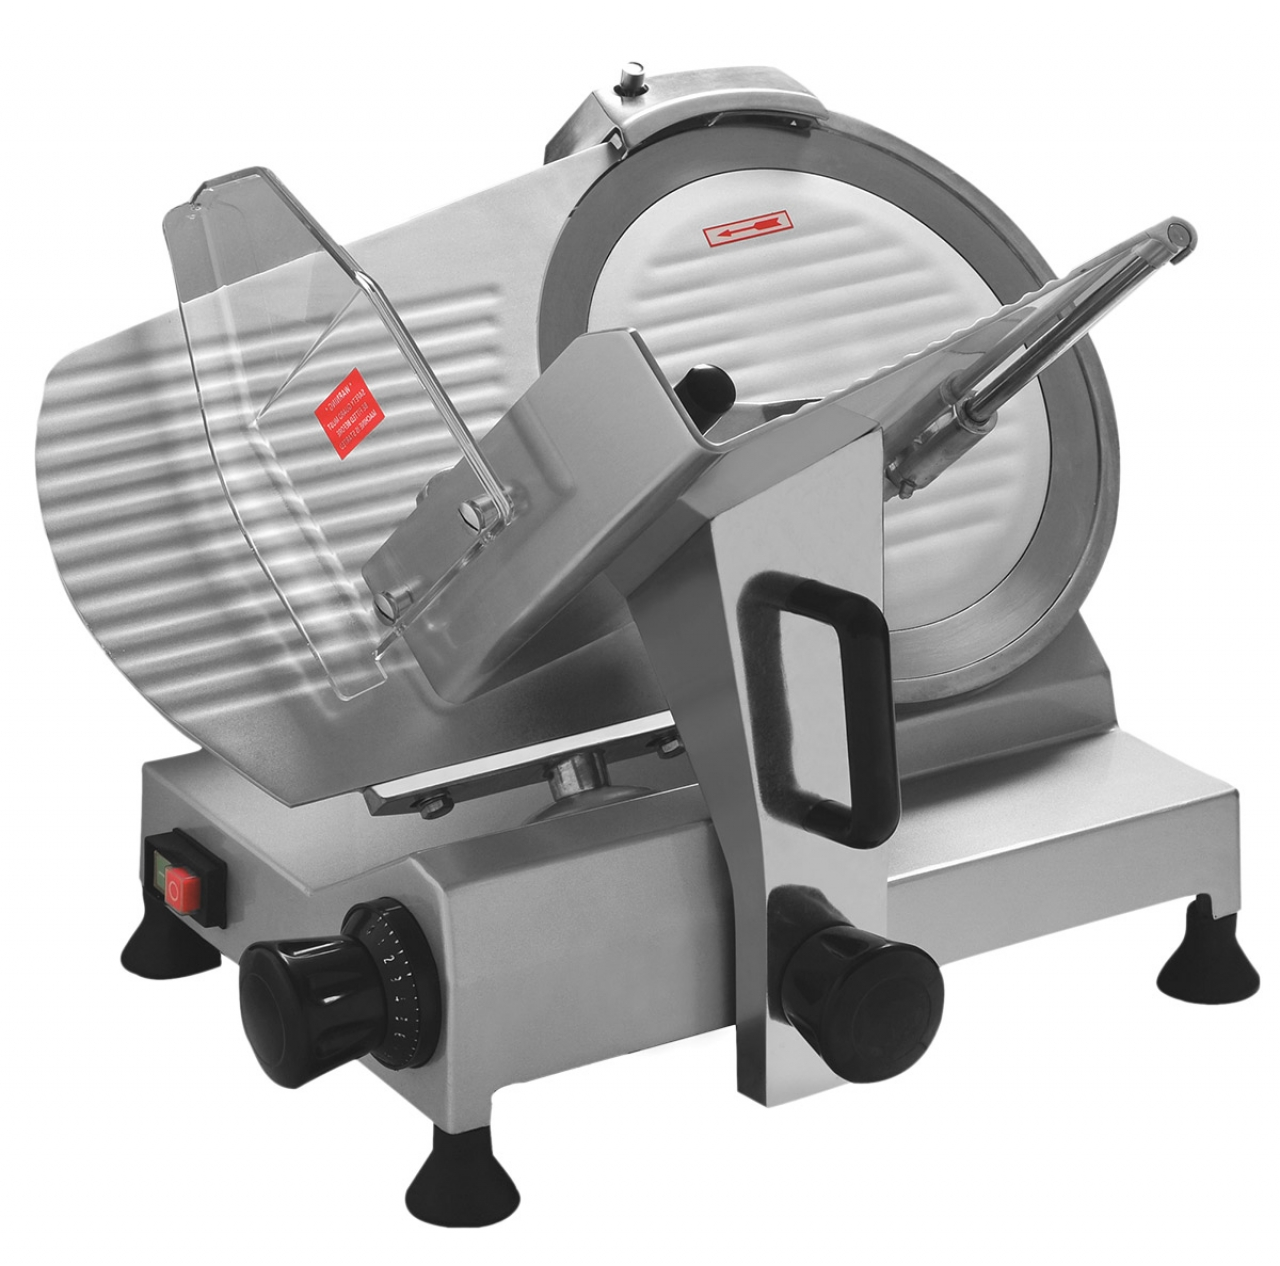 Food slicer 300mm